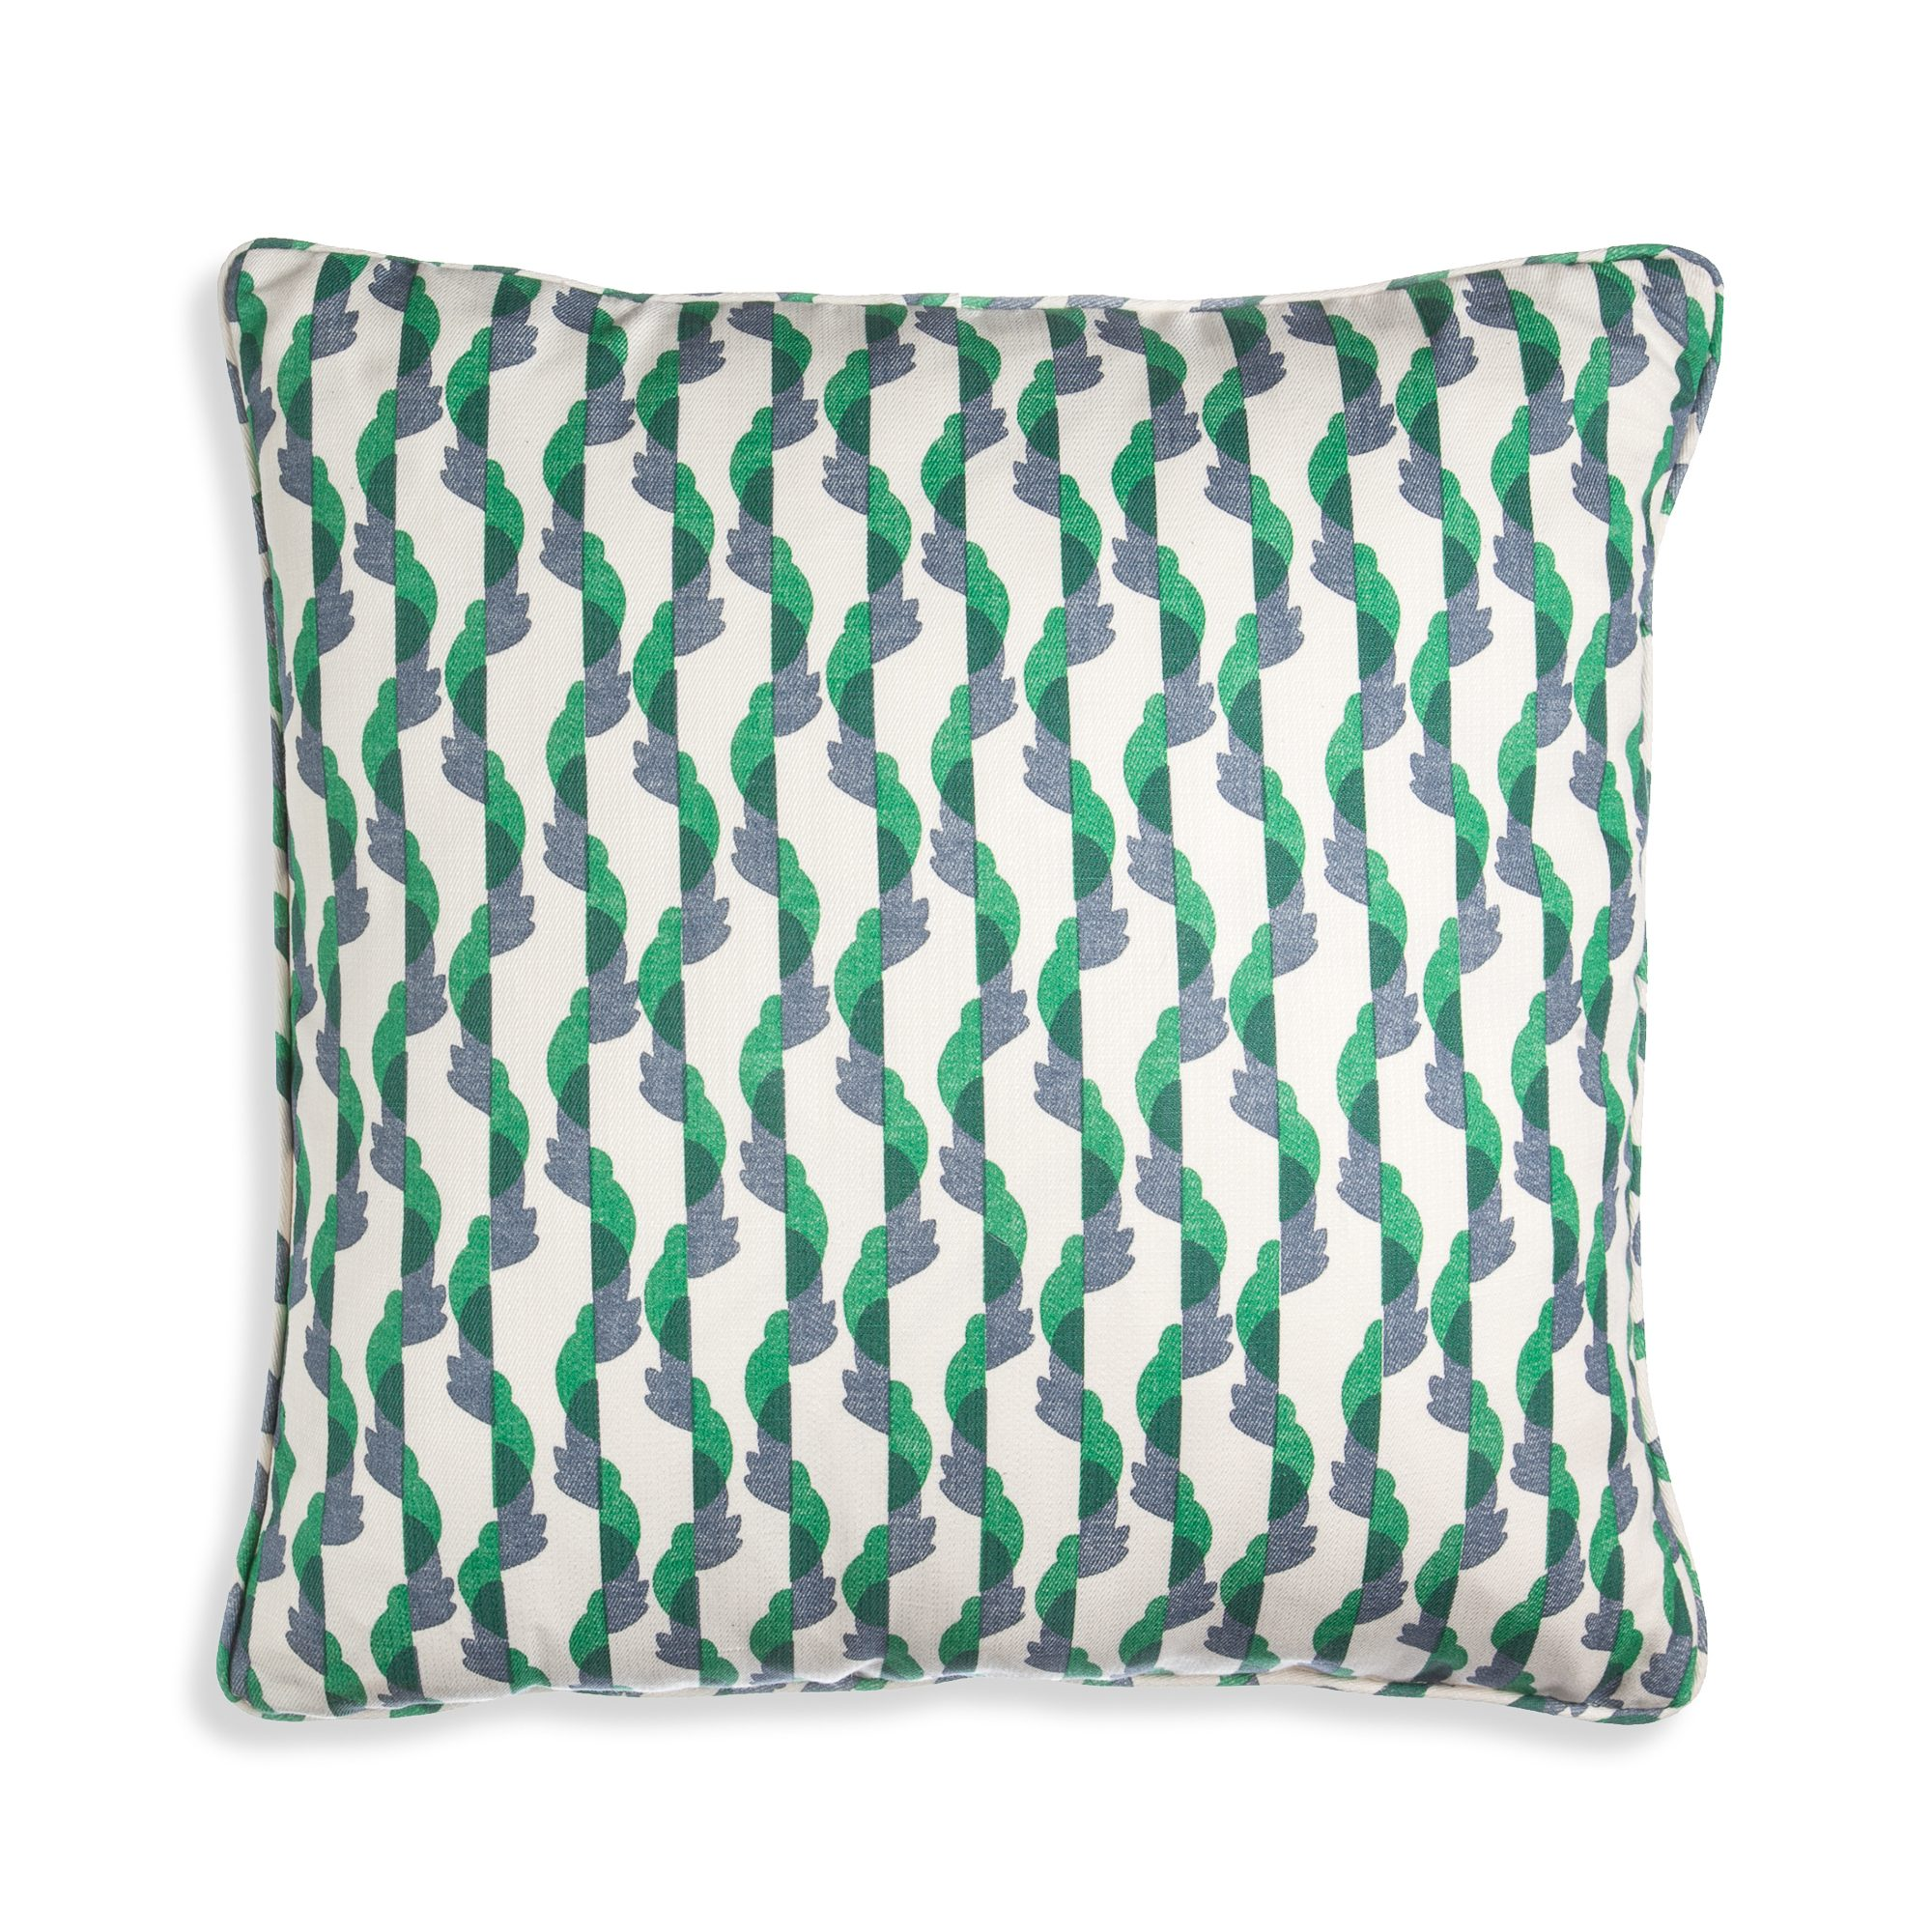 Small Square Cushion in Green and Blue Botany